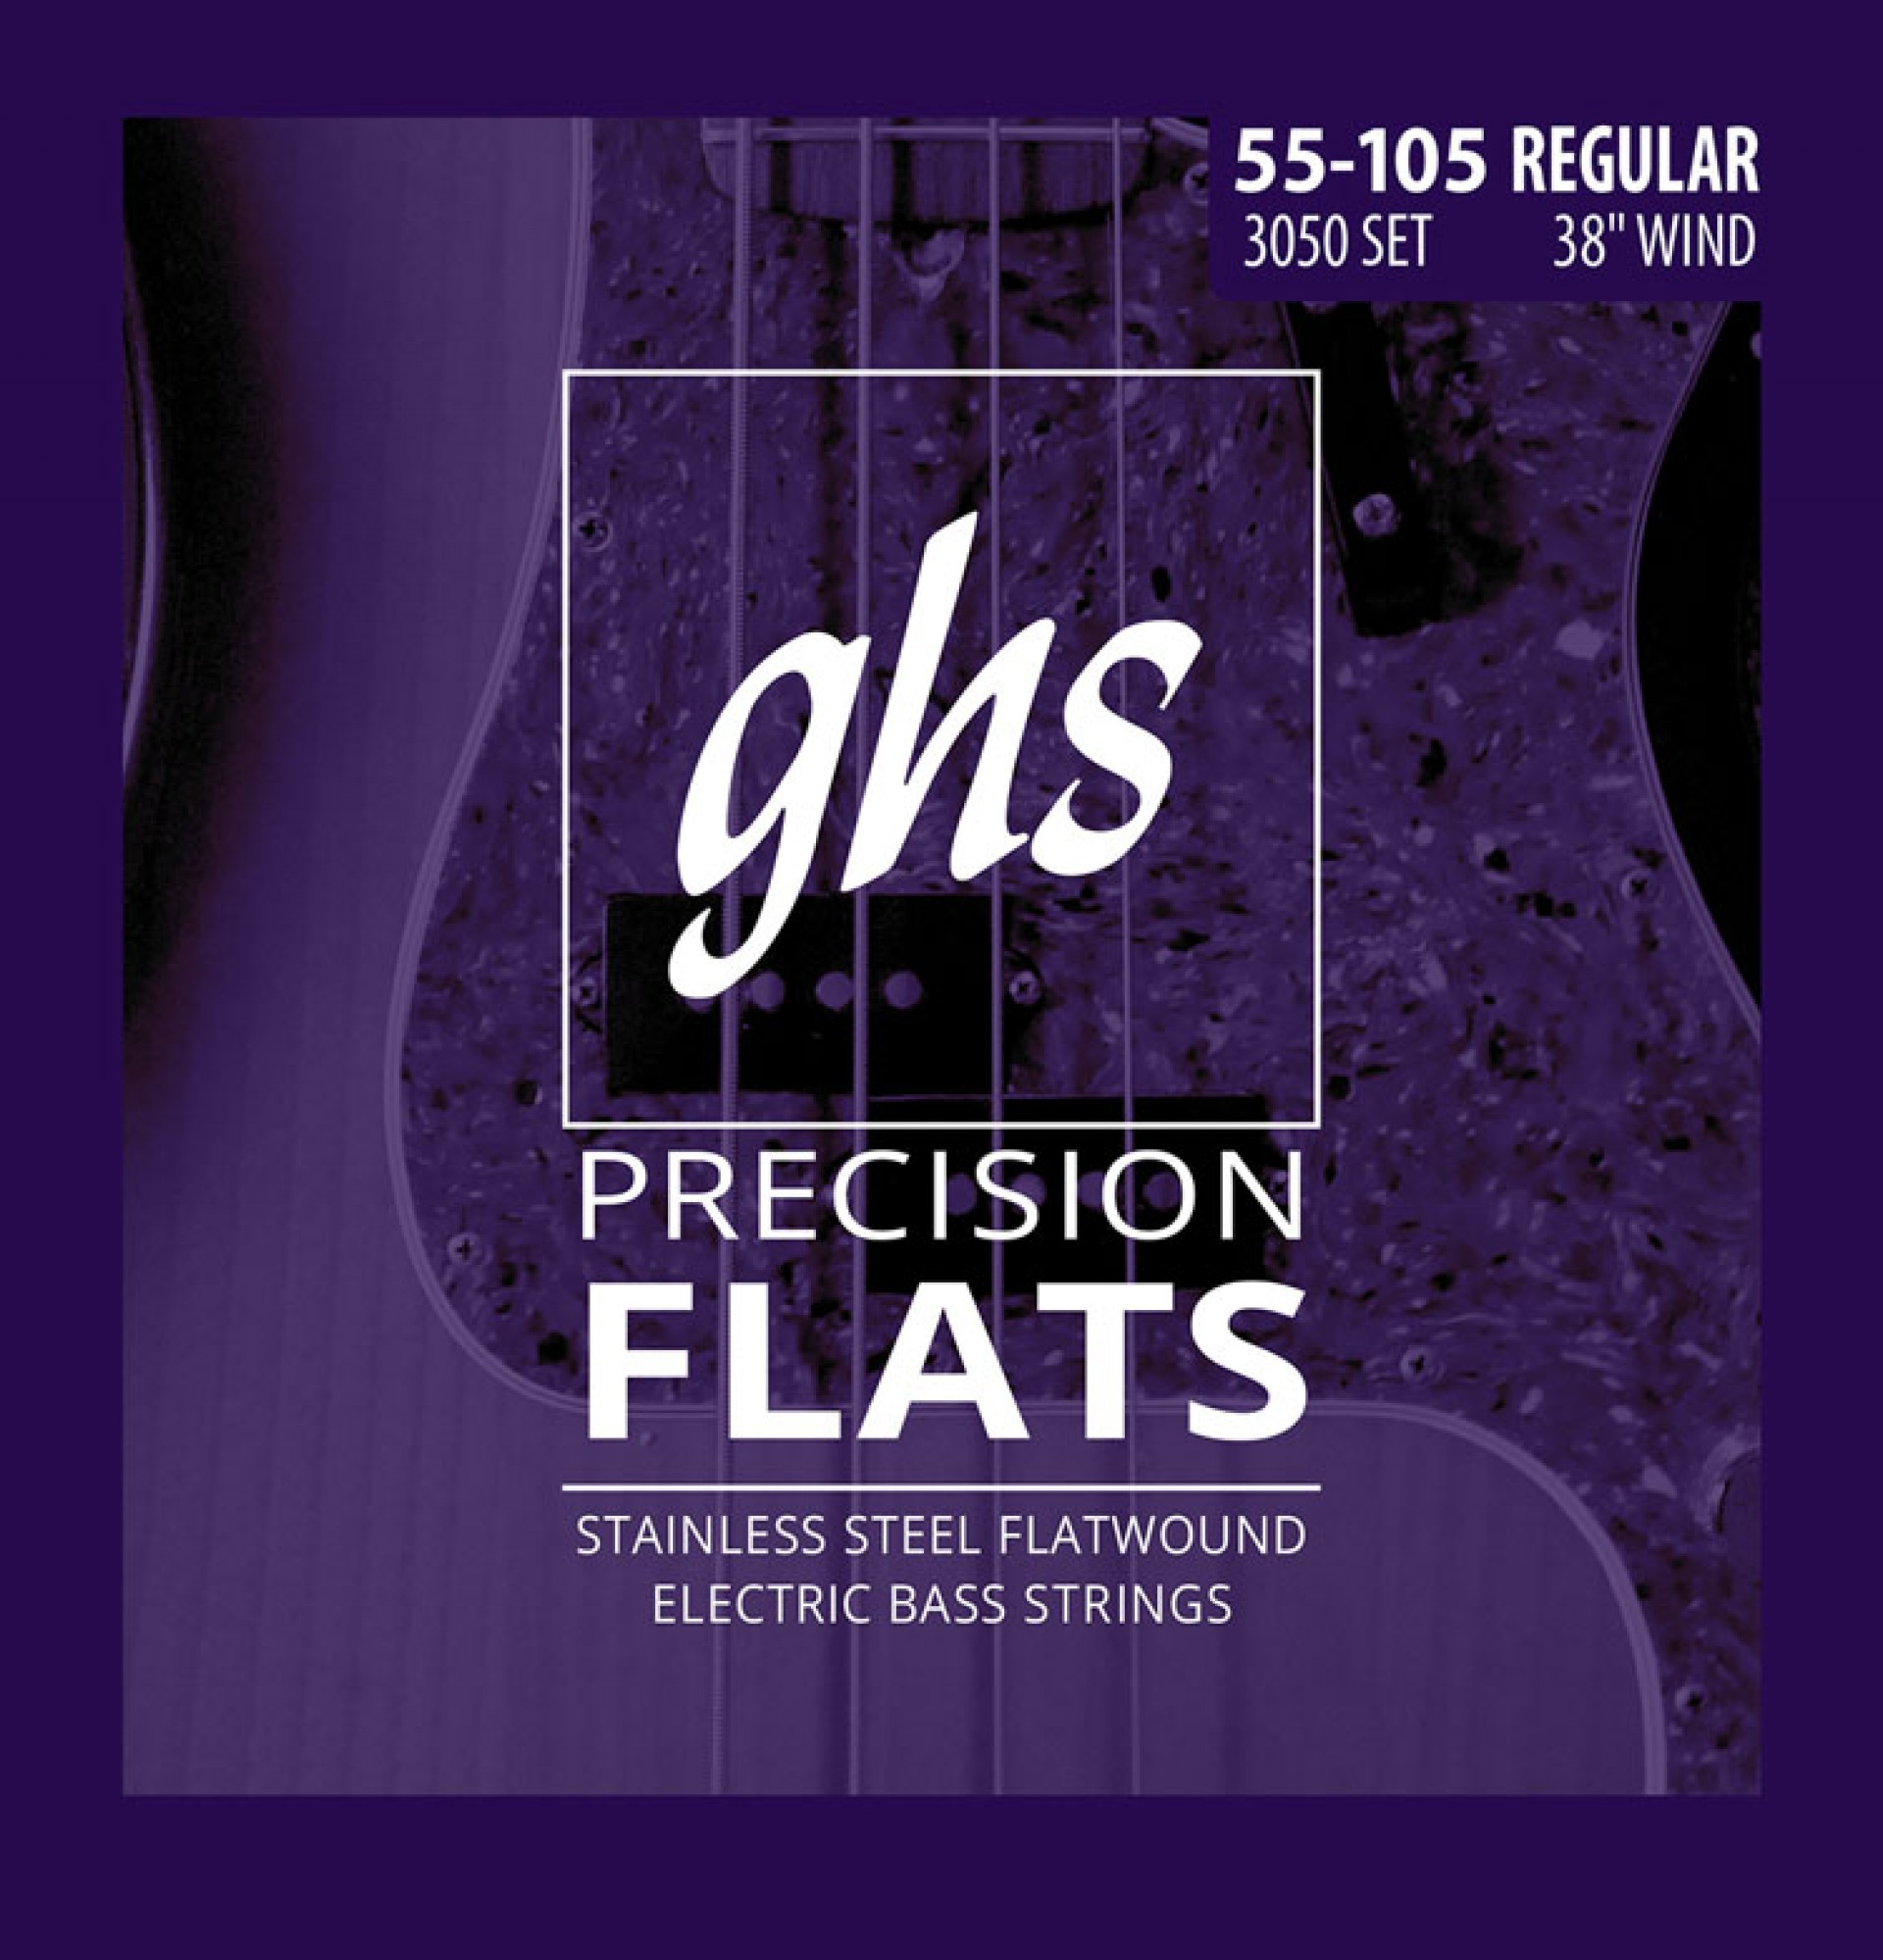 GHS 3050 Precision Flats Flatwound Bass Strings Long Scale Plus - 4-String 55-105 Regular